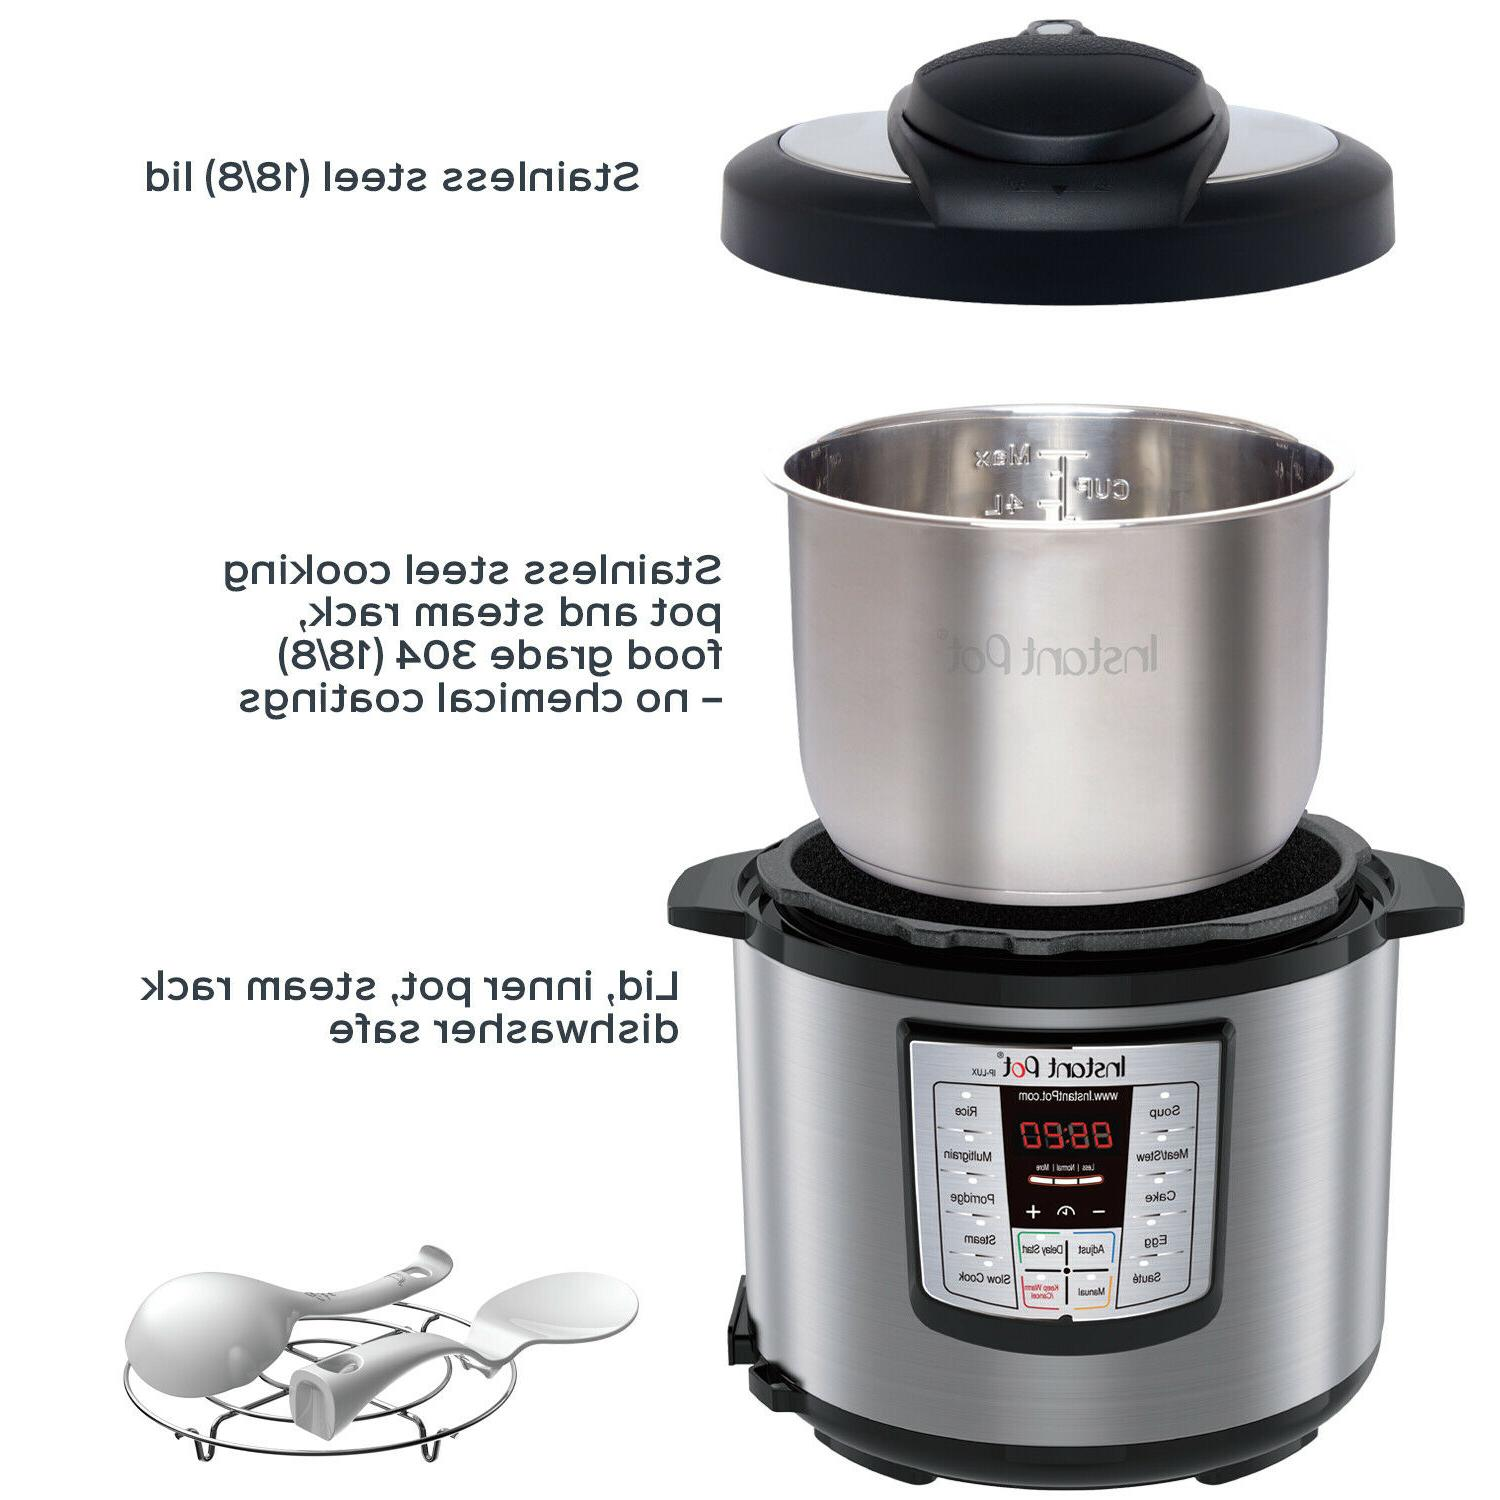 Local Up Only - LUX60 6 Qt Cooker Slow